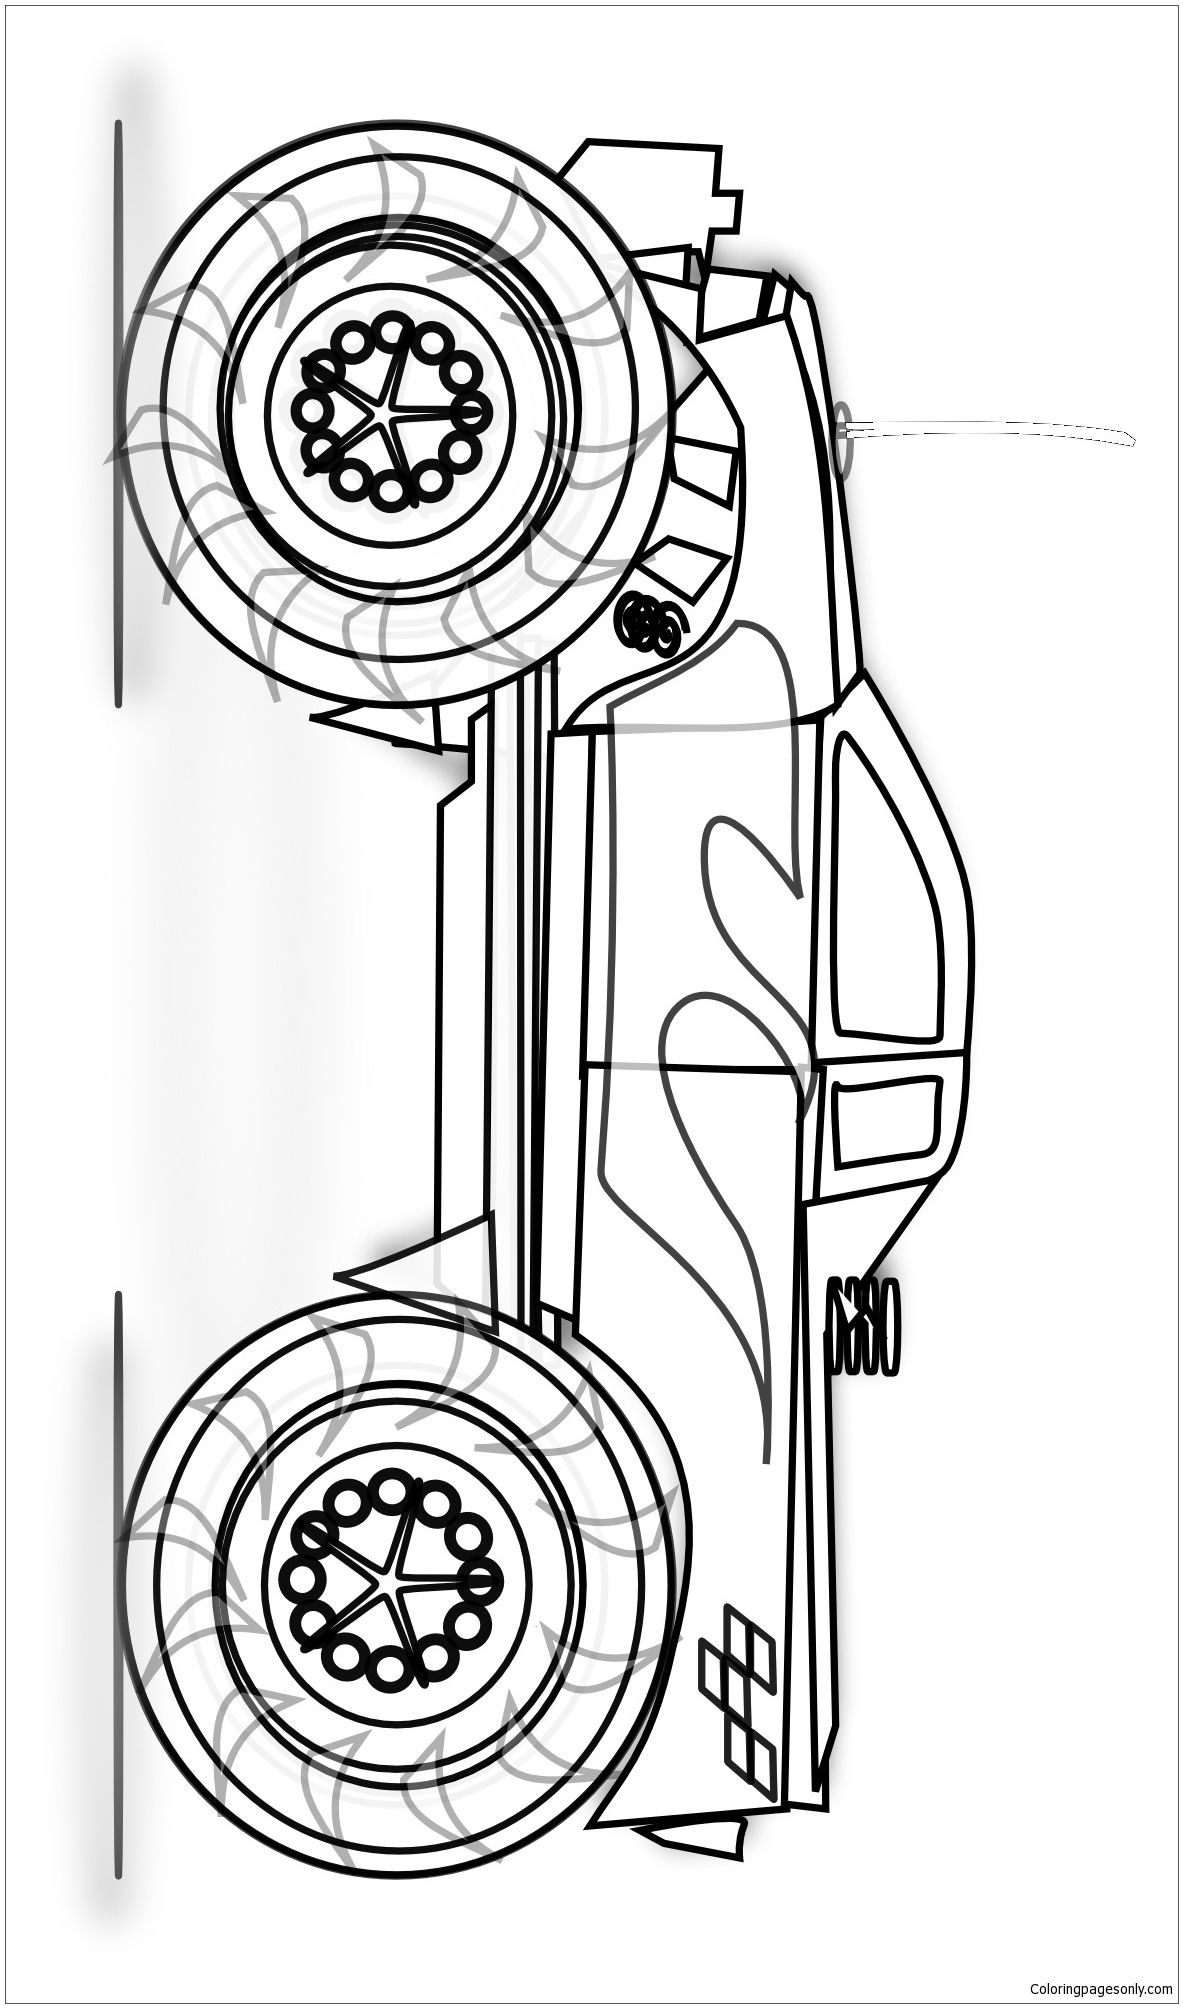 Easy Monster Truck Coloring Page: This is Monster truck coloring ...